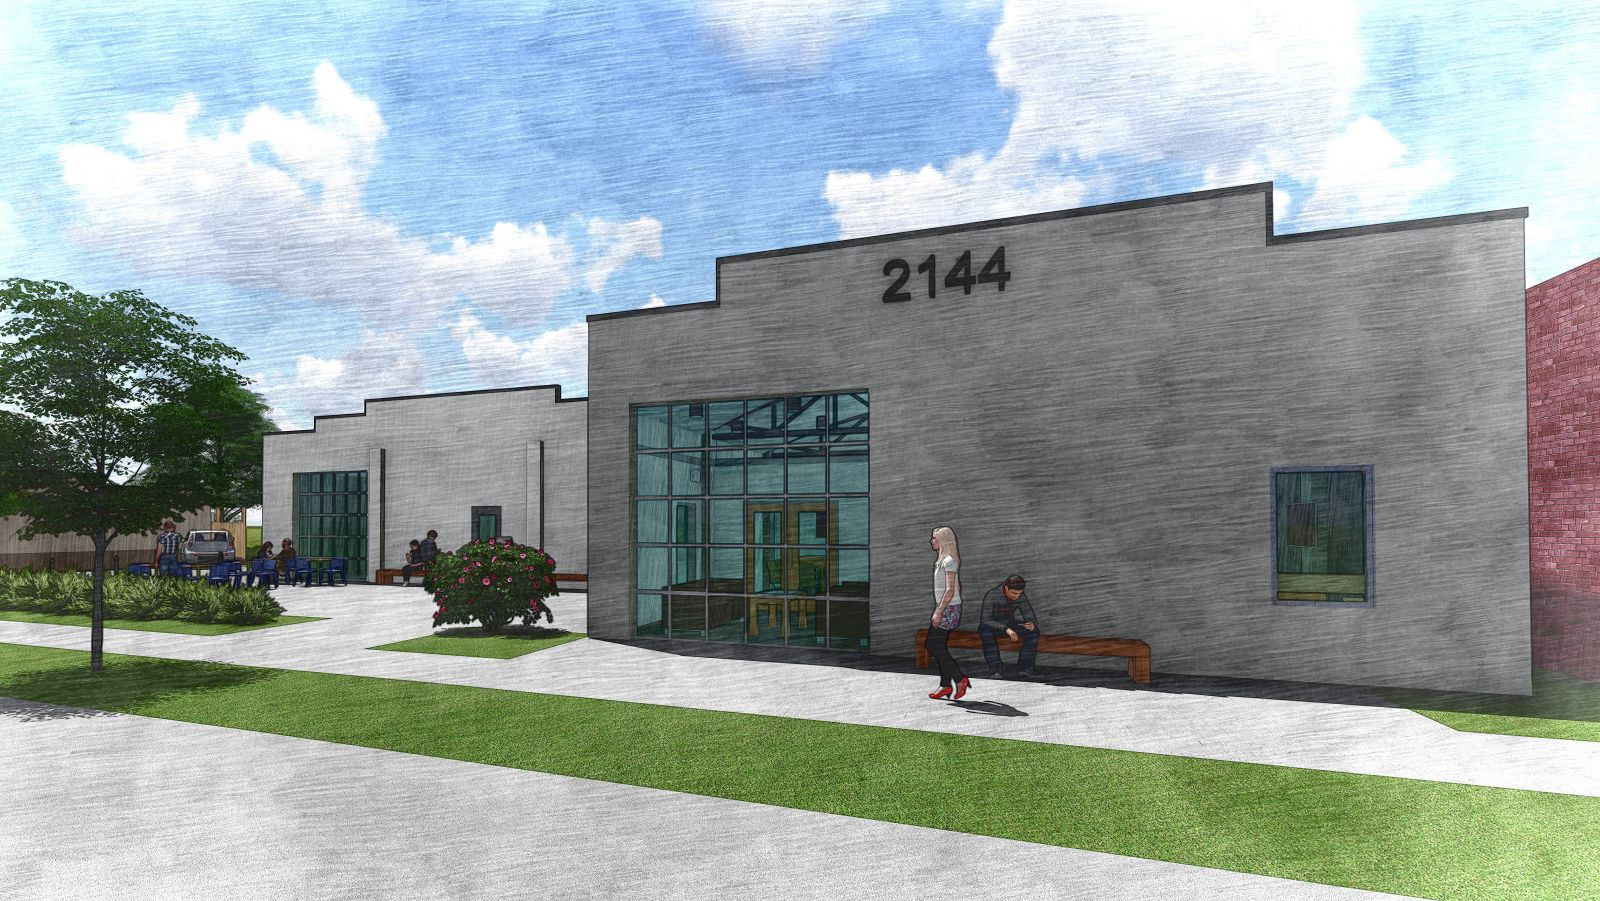 A rendering of the new offices of the Cason Group at 2144 Sumter St. (Image/Provided)